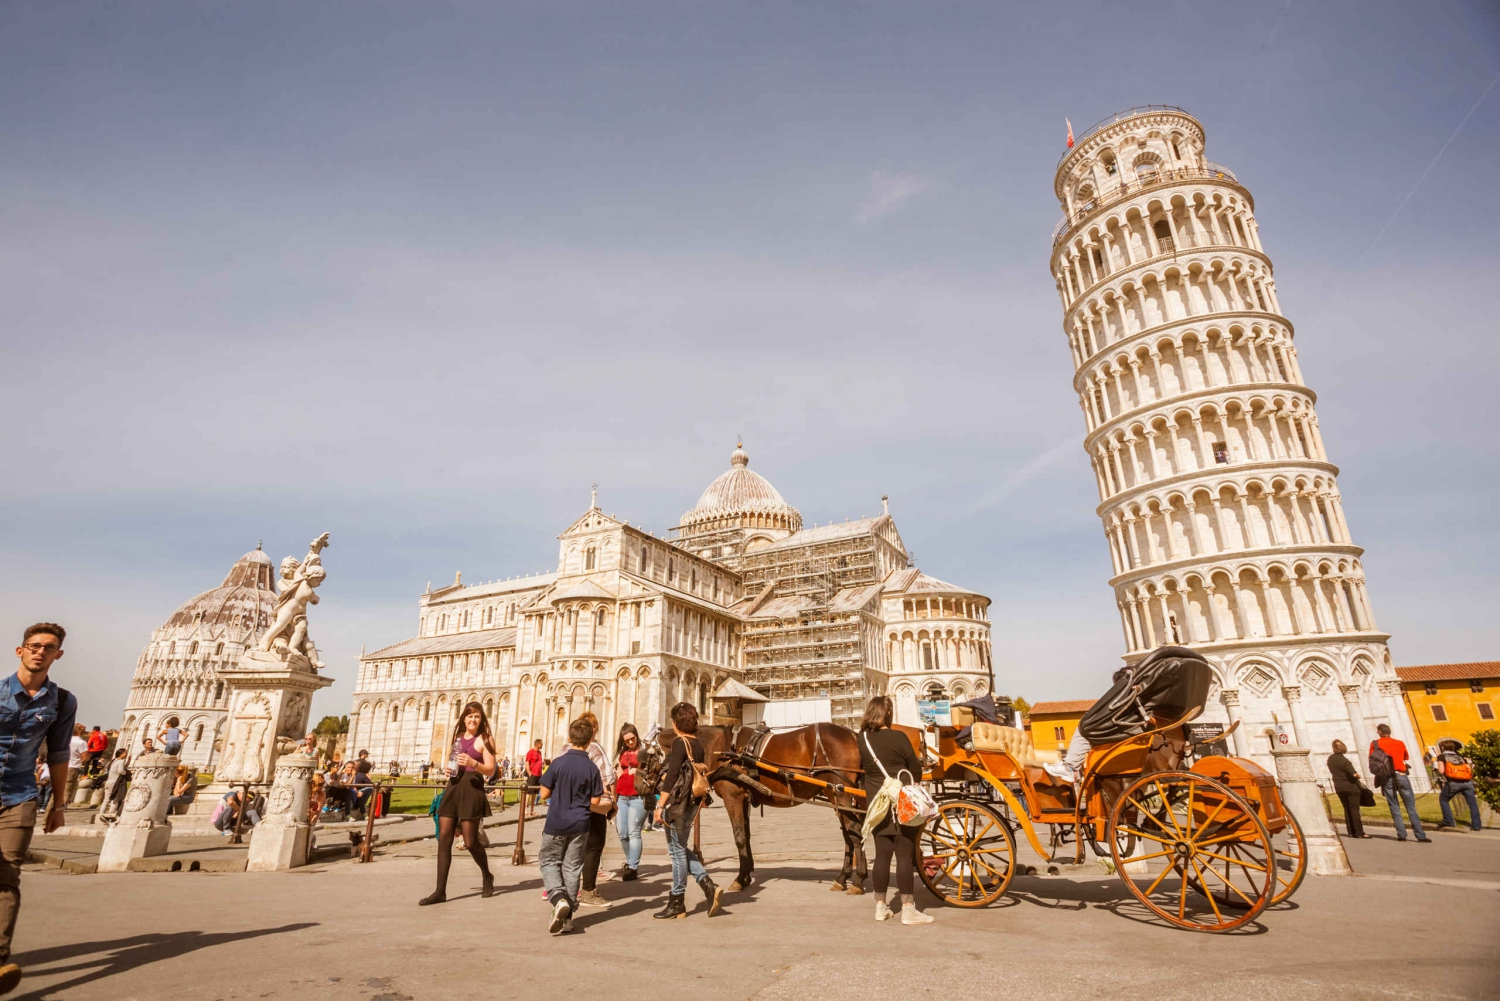 From Pisa Day Tour with Leaning Tower of Pisa